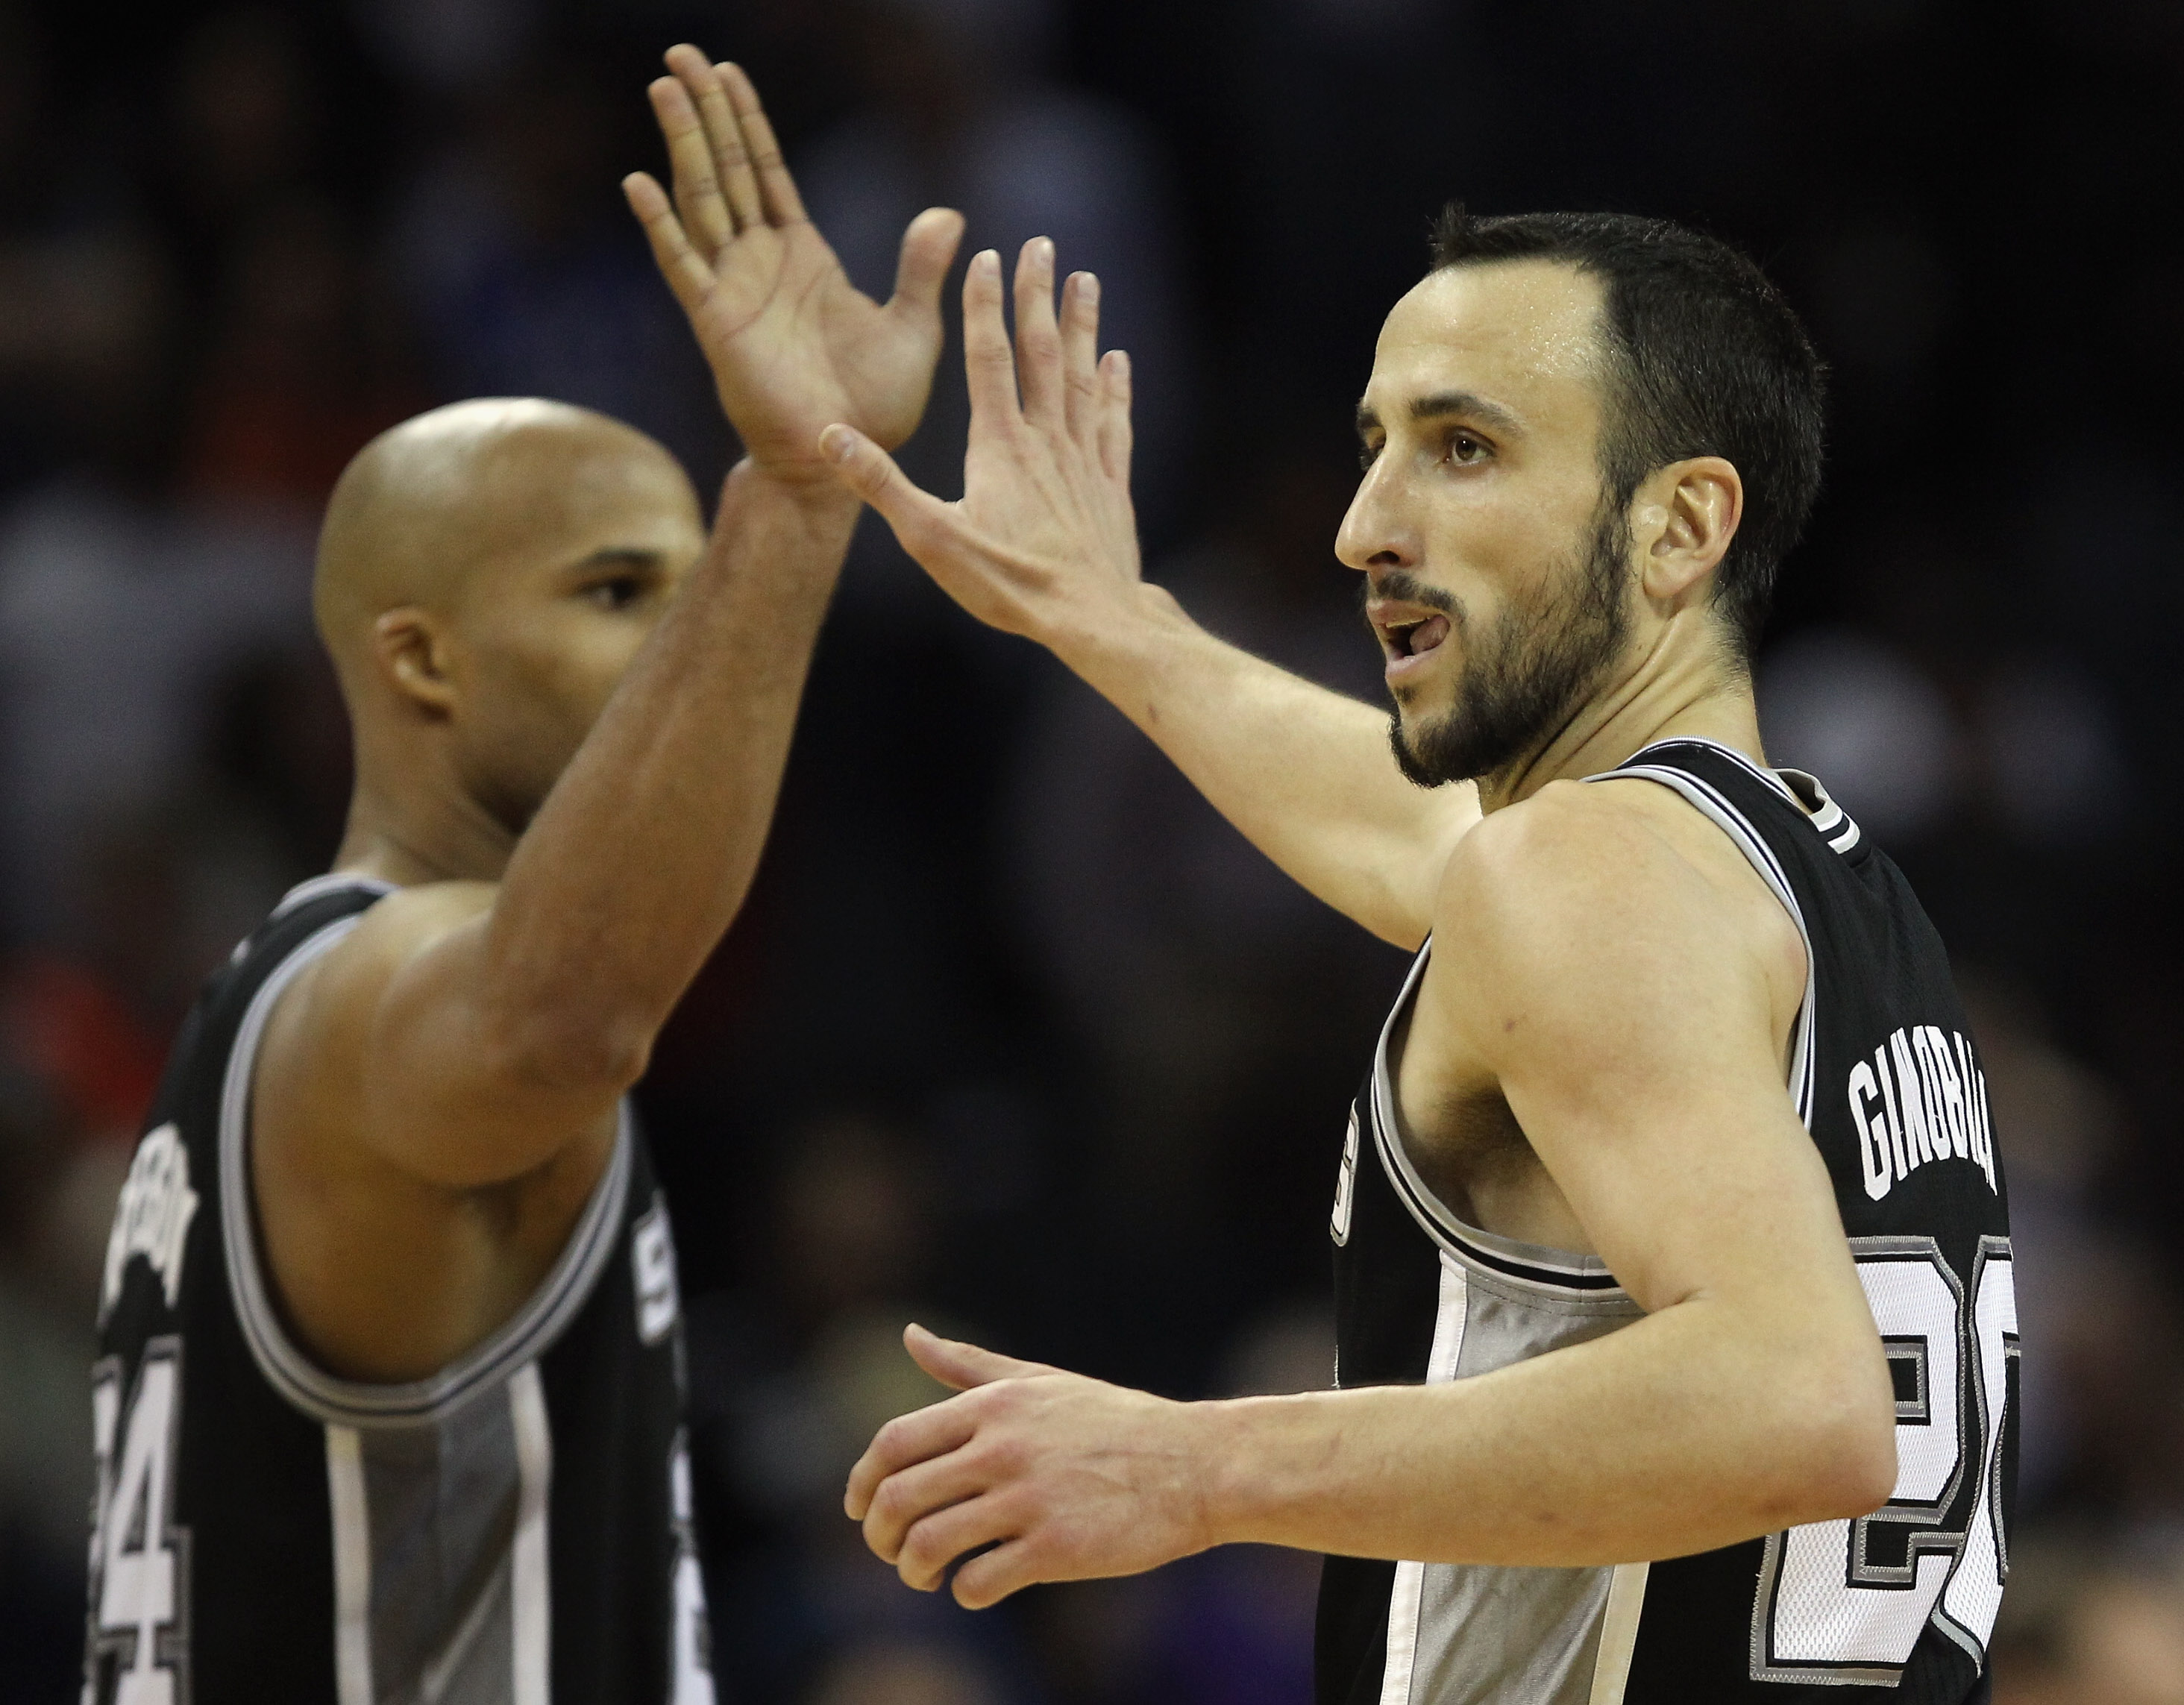 CHARLOTTE, NC - NOVEMBER 08:  Manu Ginobili #20 of the San Antonio Spurs celebrates with teammate Richard Jefferson #24 after making a basket late in the 4th quarter giving the Spurs a 95-91 victory over the Charlotte Bobcats during their game at Time War